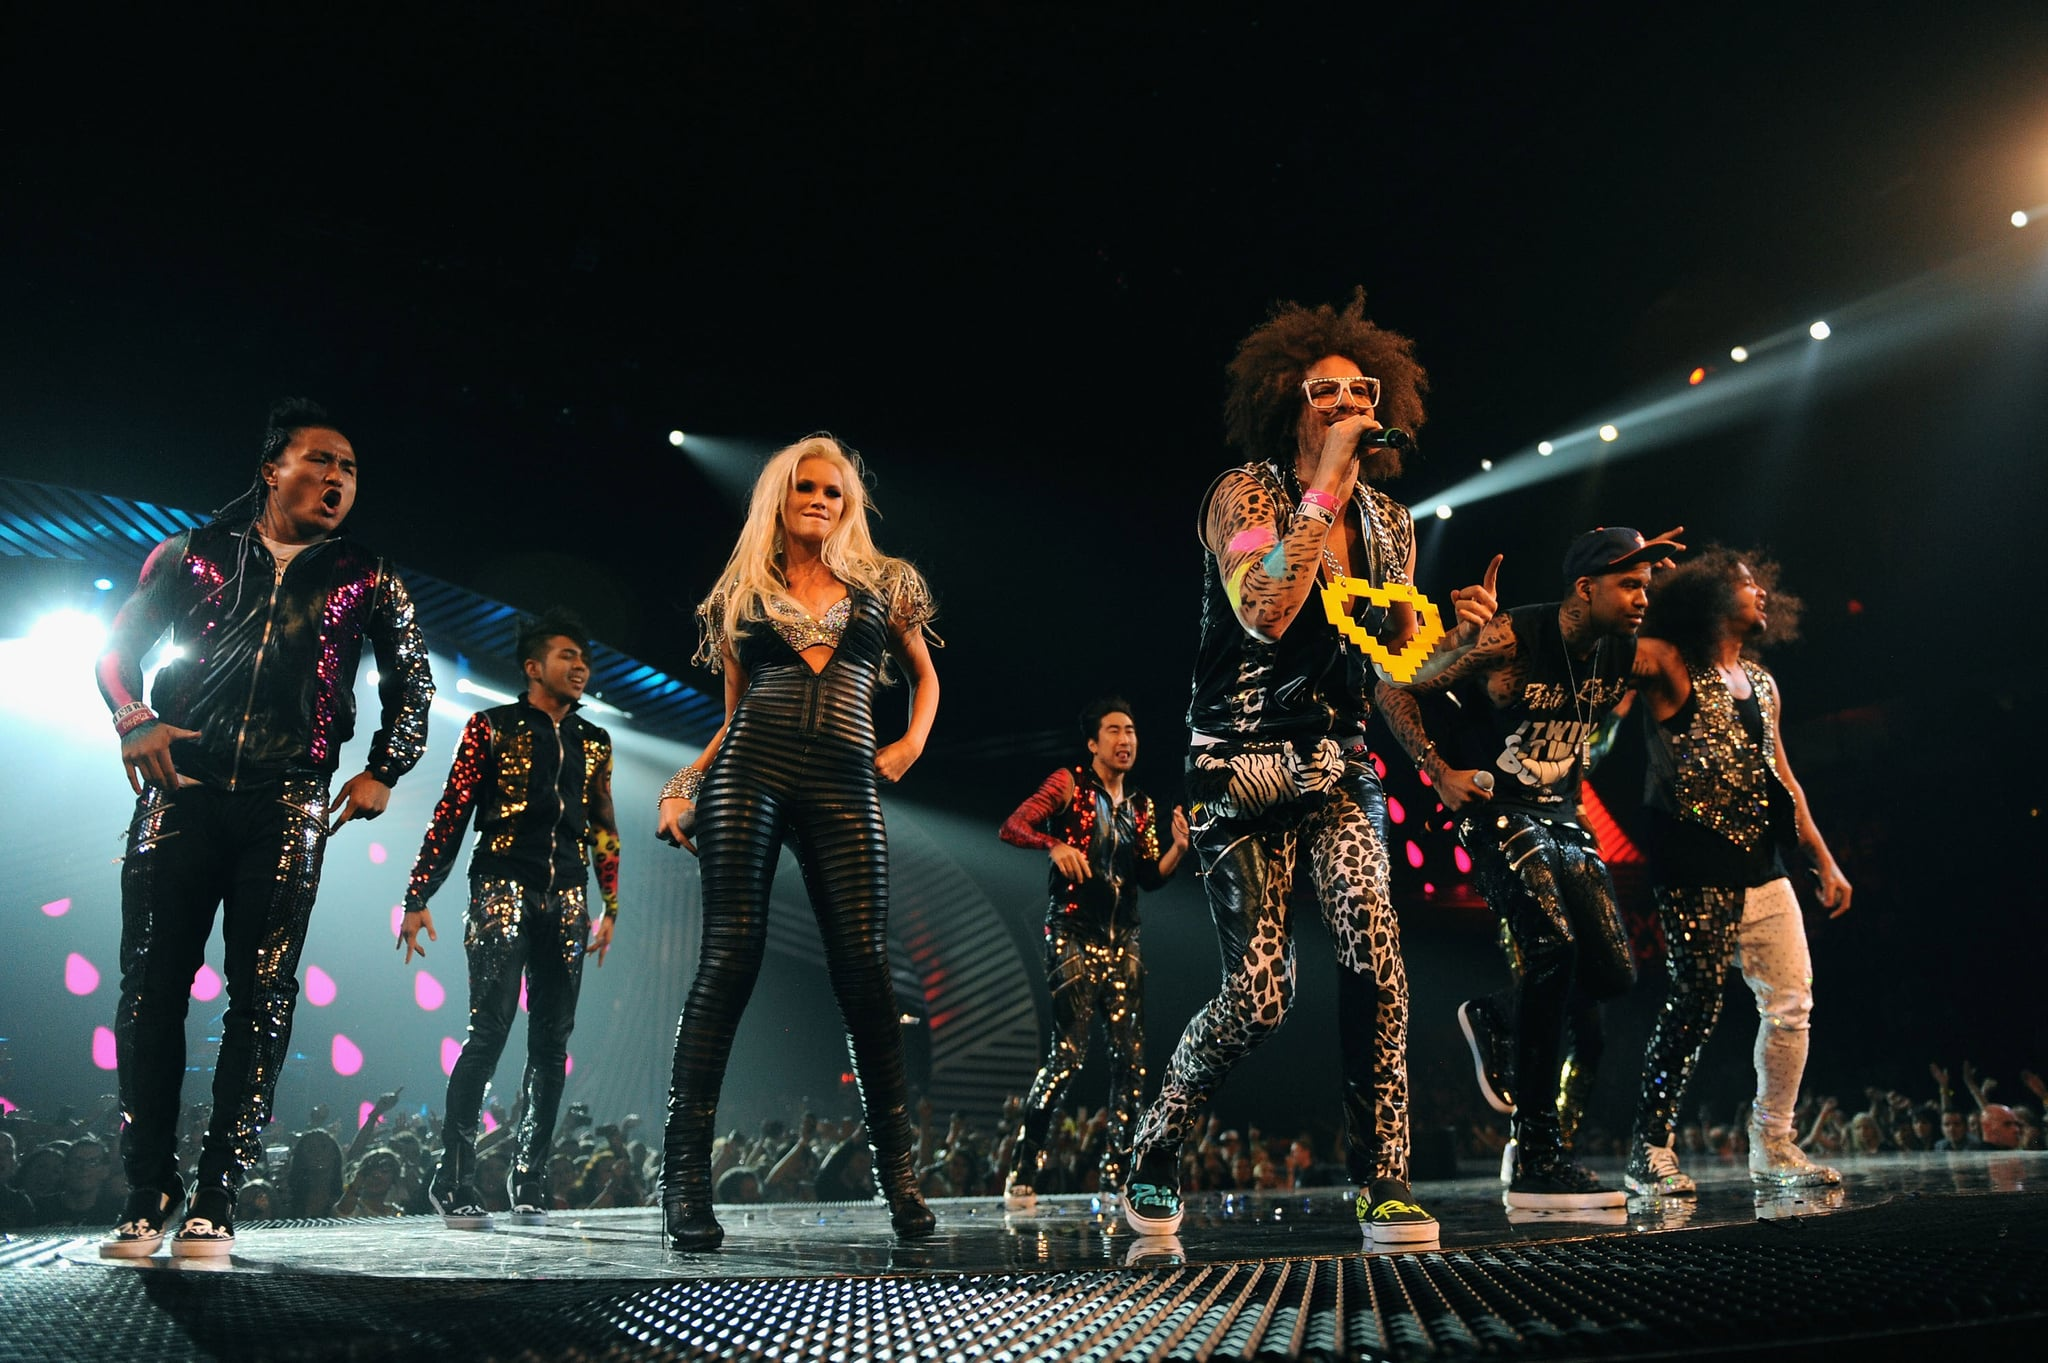 LMFAO performed their hits for the Irish crowd.